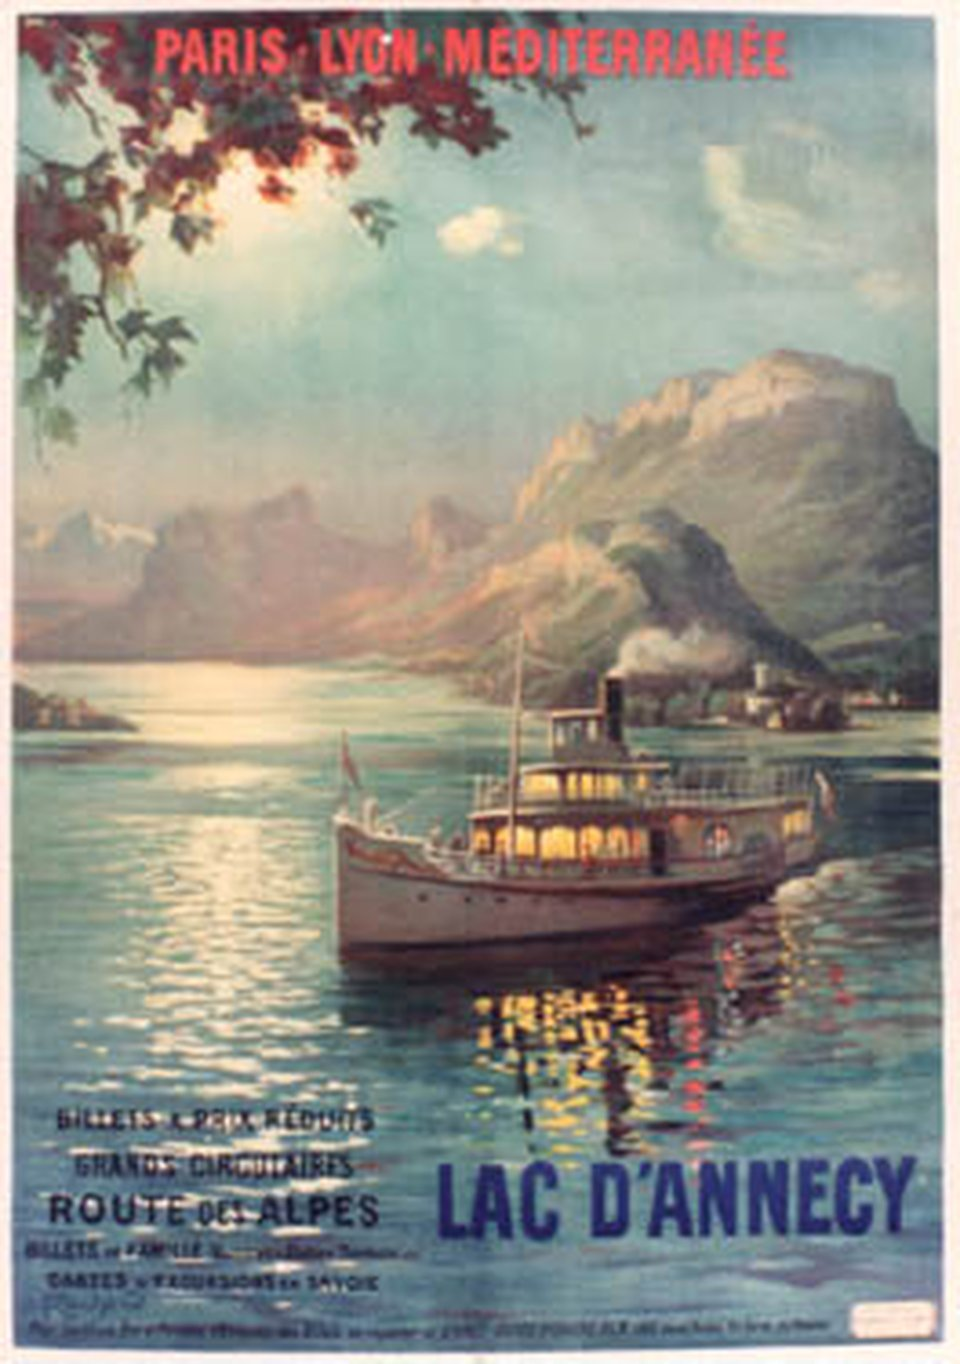 Affiche ancienne – Lac d'Annecy, PLM – Galerie 1 2 3